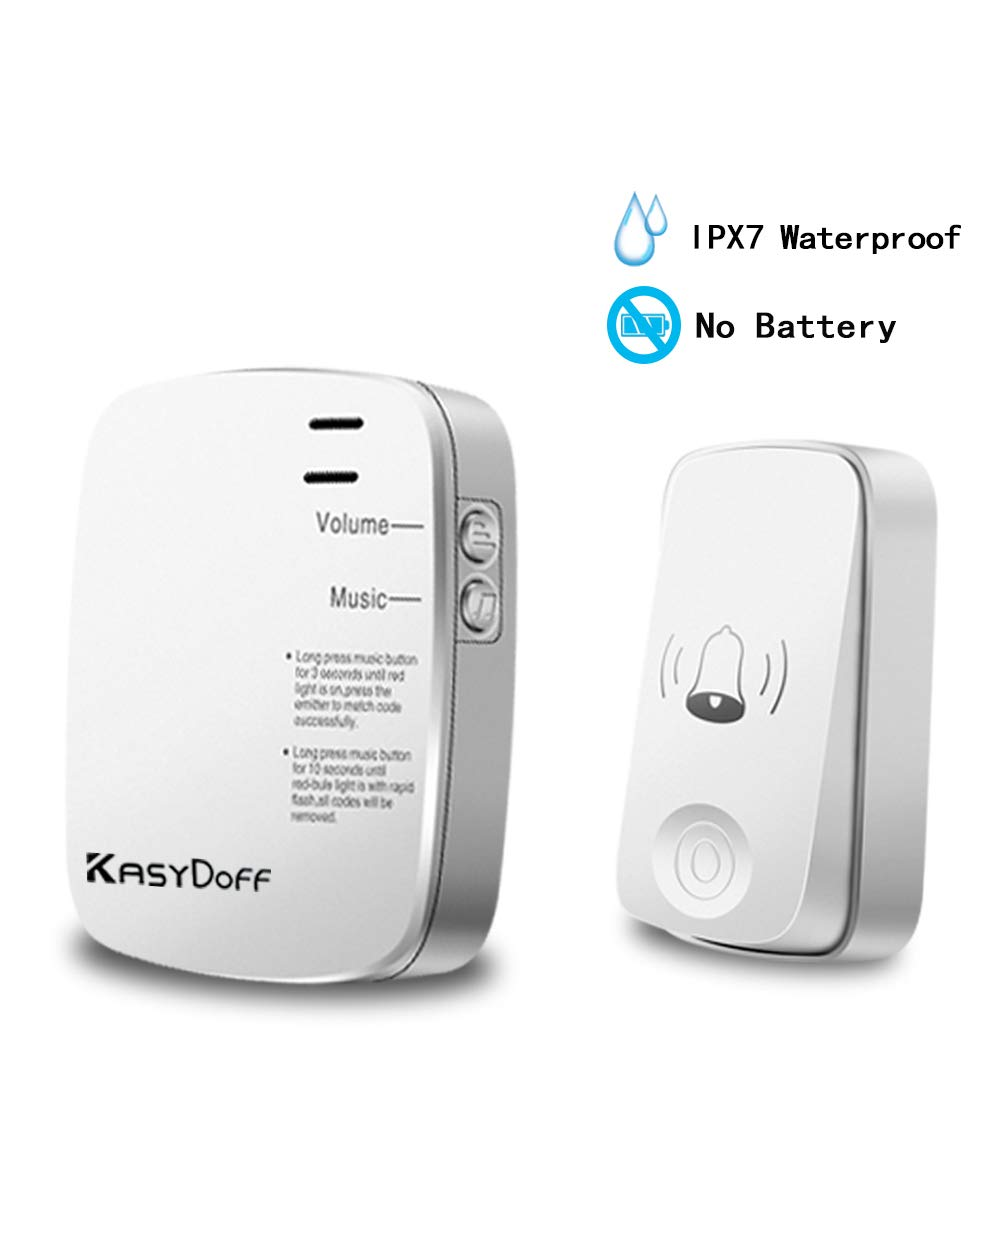 Kasydoff Wireless Doorbell Kits No Battery Required for Transmitter, IPX7 Waterproof Push Button Operating at Over 650-Feet Range with Over 32 Chimes 4-Level Volume (One Transmitter+One Receiver)